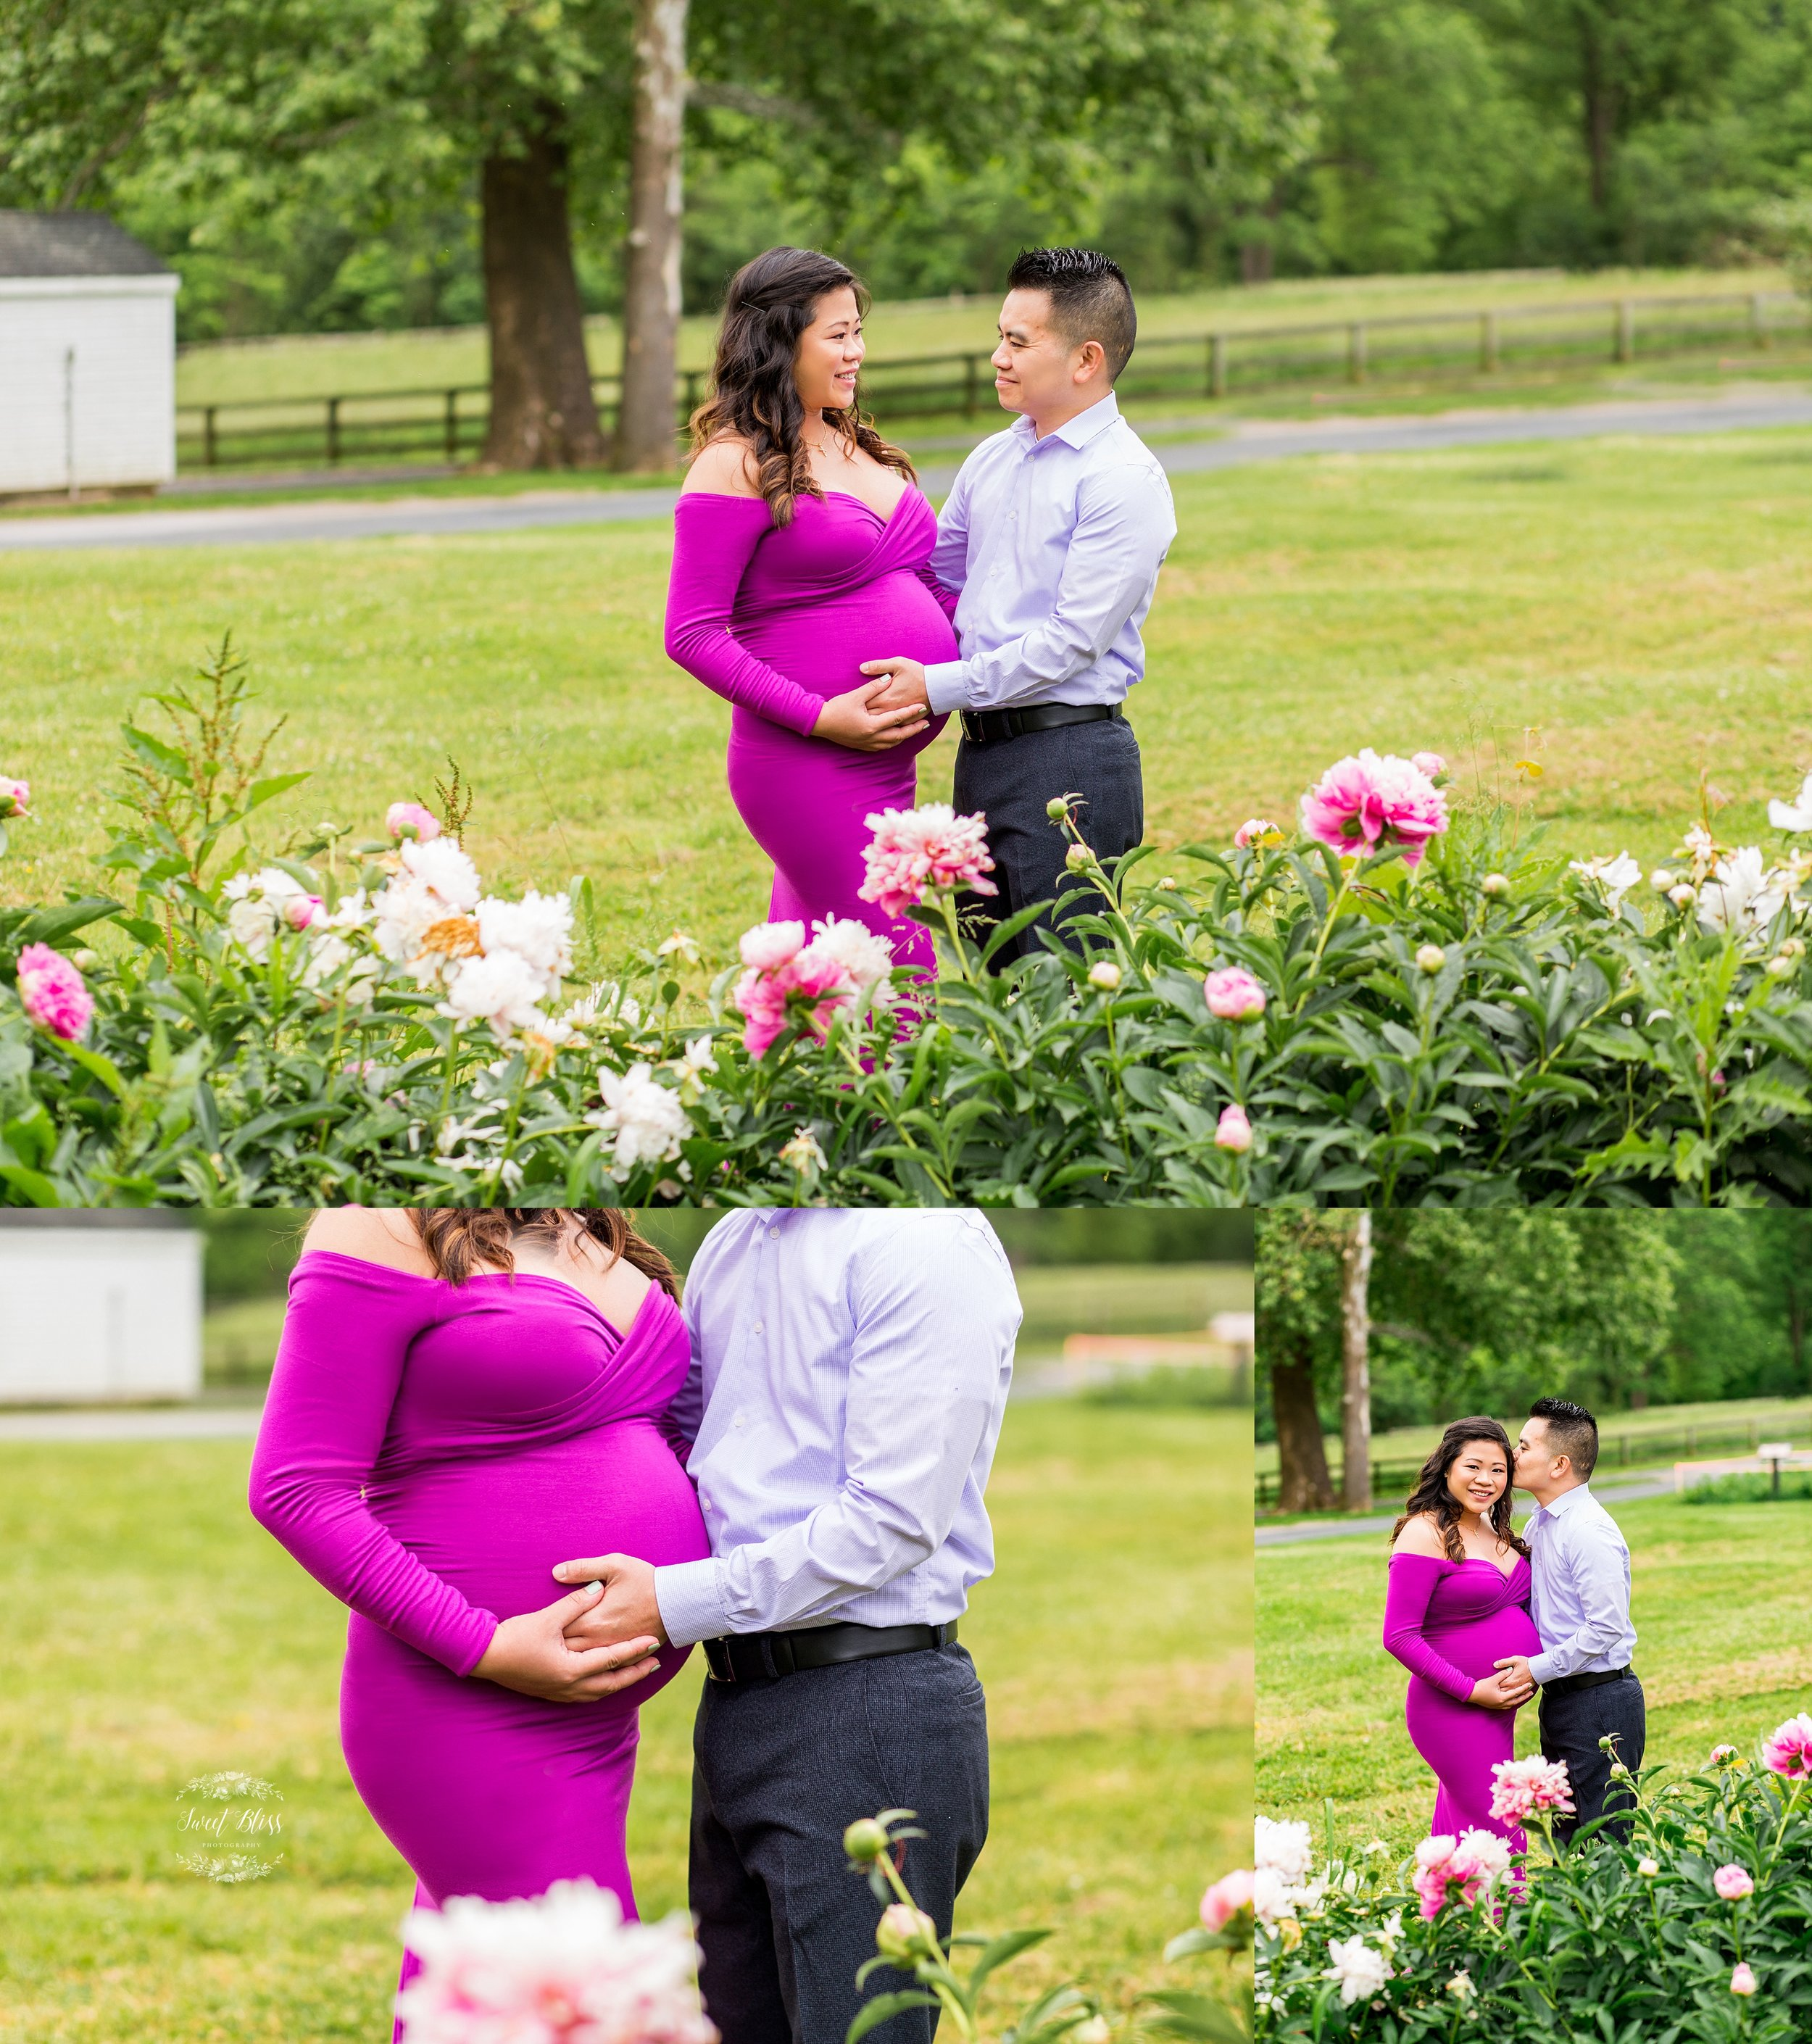 maternitymarylandPhotographer_newbornphoto_sweetblissphotography-10.jpg